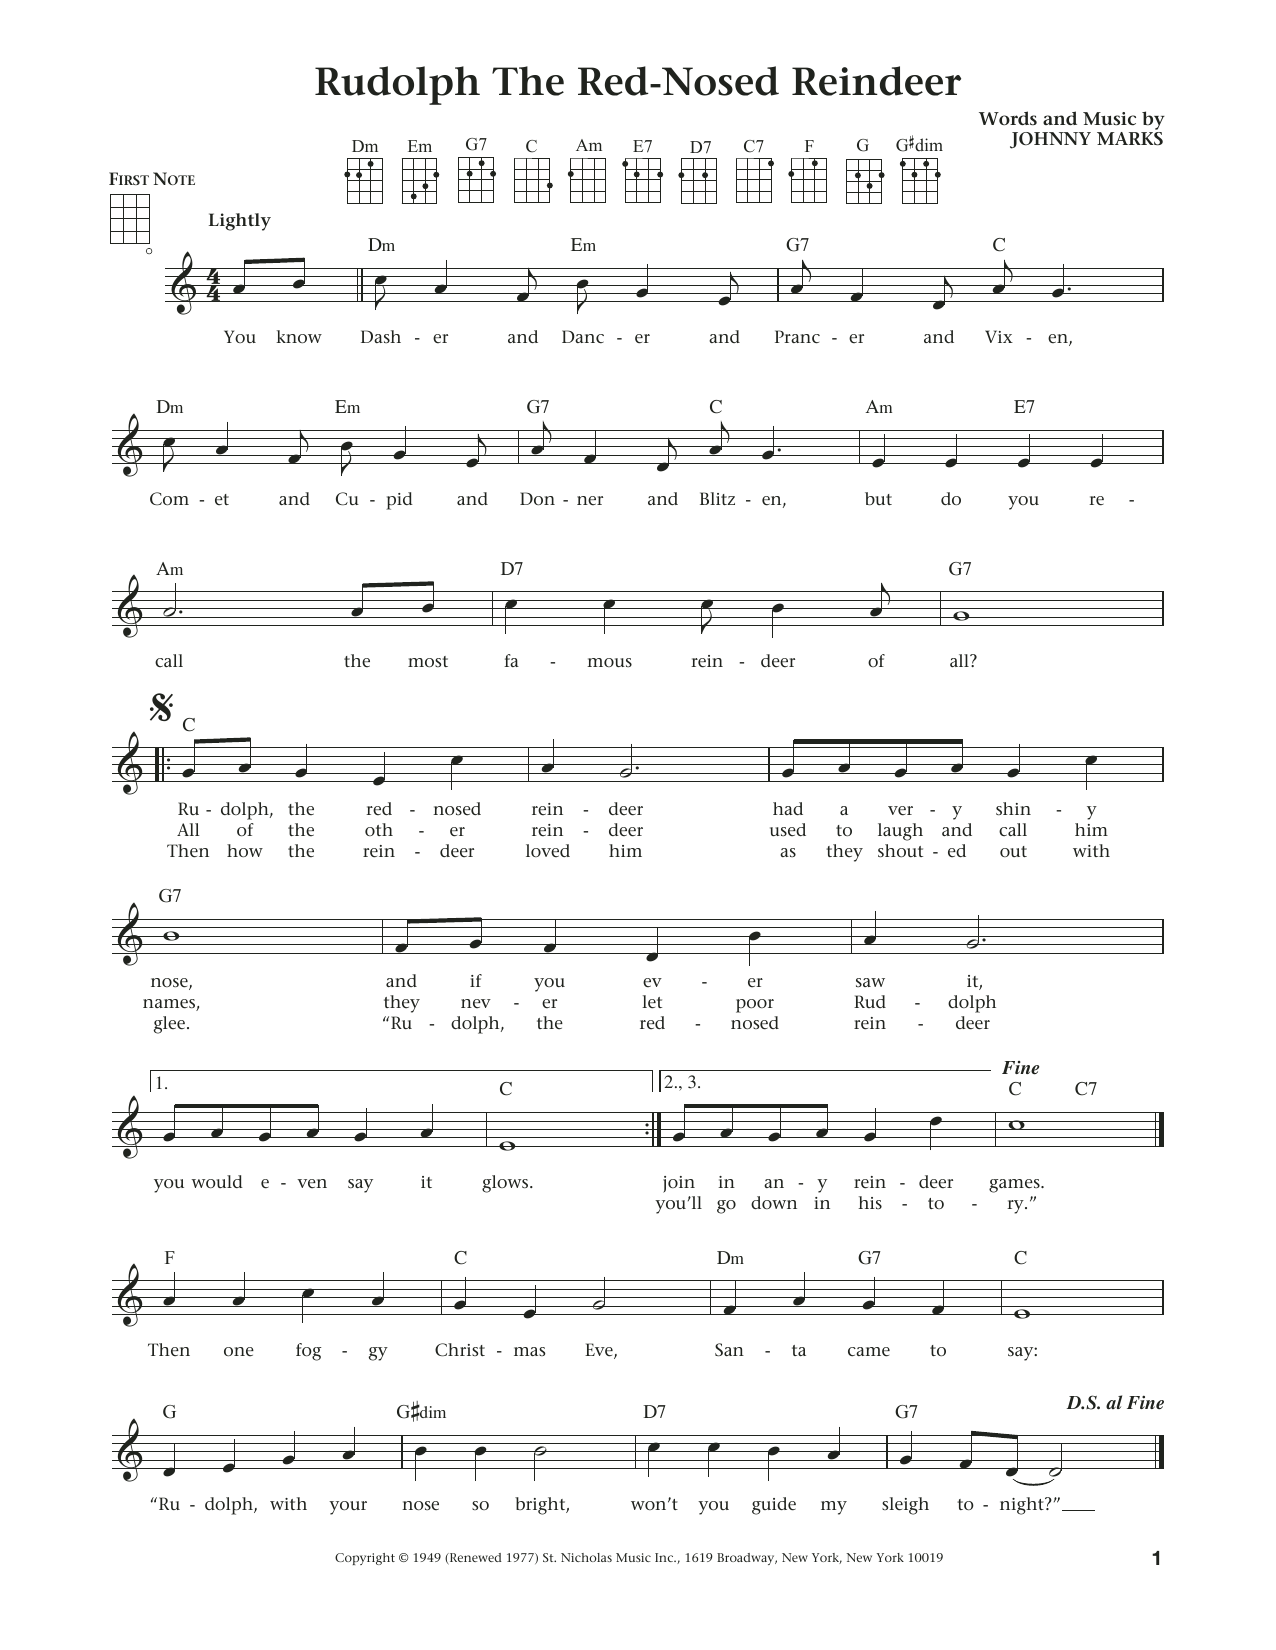 Rudolph The Red-Nosed Reindeer (from The Daily Ukulele) (arr. Liz and Jim Beloff) (Ukulele)